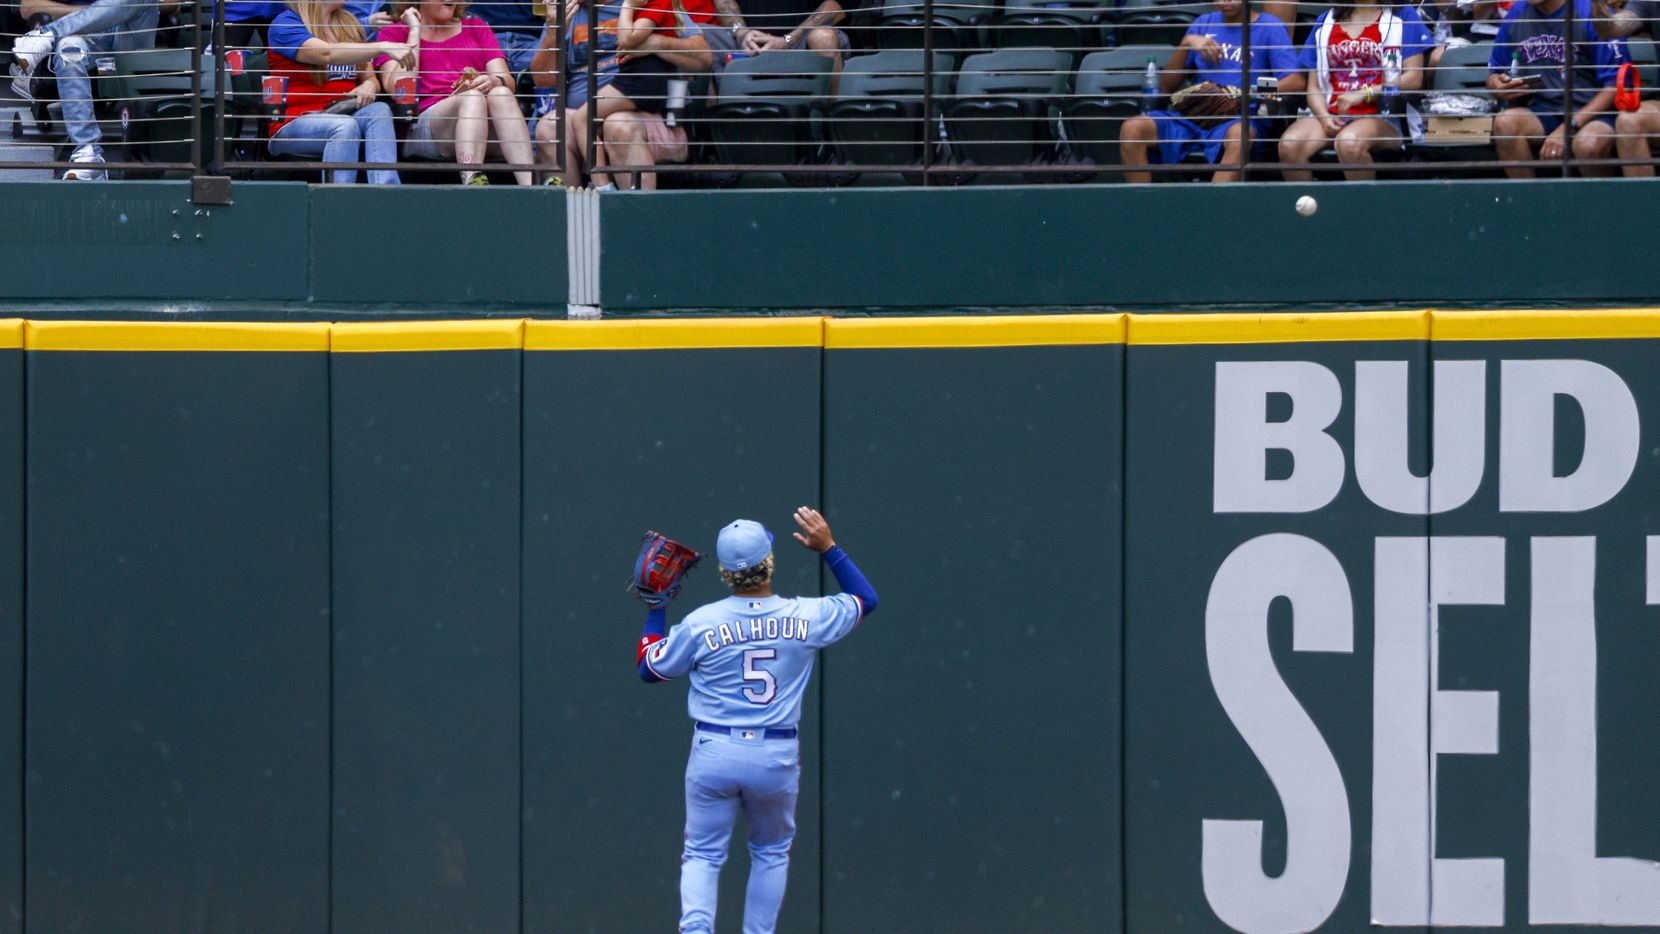 Texas Rangers left fielder Willie Calhoun (5) reacts to a ground rule double by Cleveland Indians left fielder Oscar Mercado (35) during the third inning of a game against the Cleveland Indians at Globe Life Field on Sunday, Oct. 3, 2021, in Arlington.